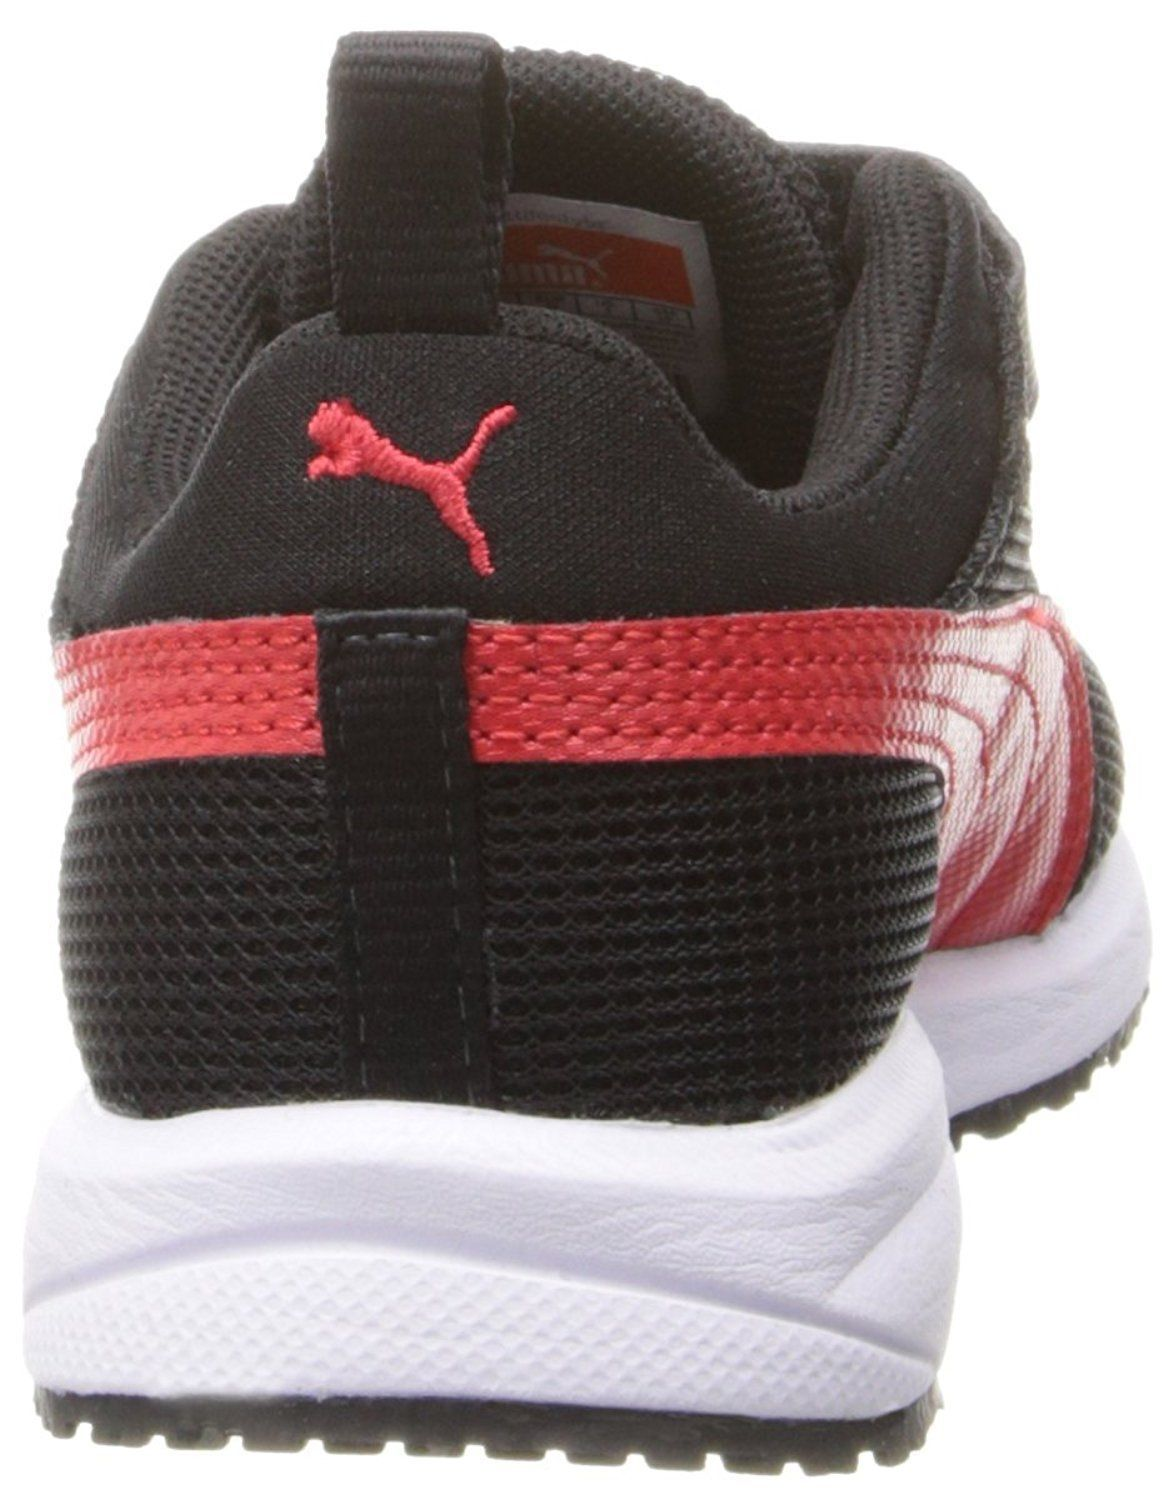 Puma PUMA Carson Runner V Kids Sneaker (Infant/Toddler/Little Kid) New  1